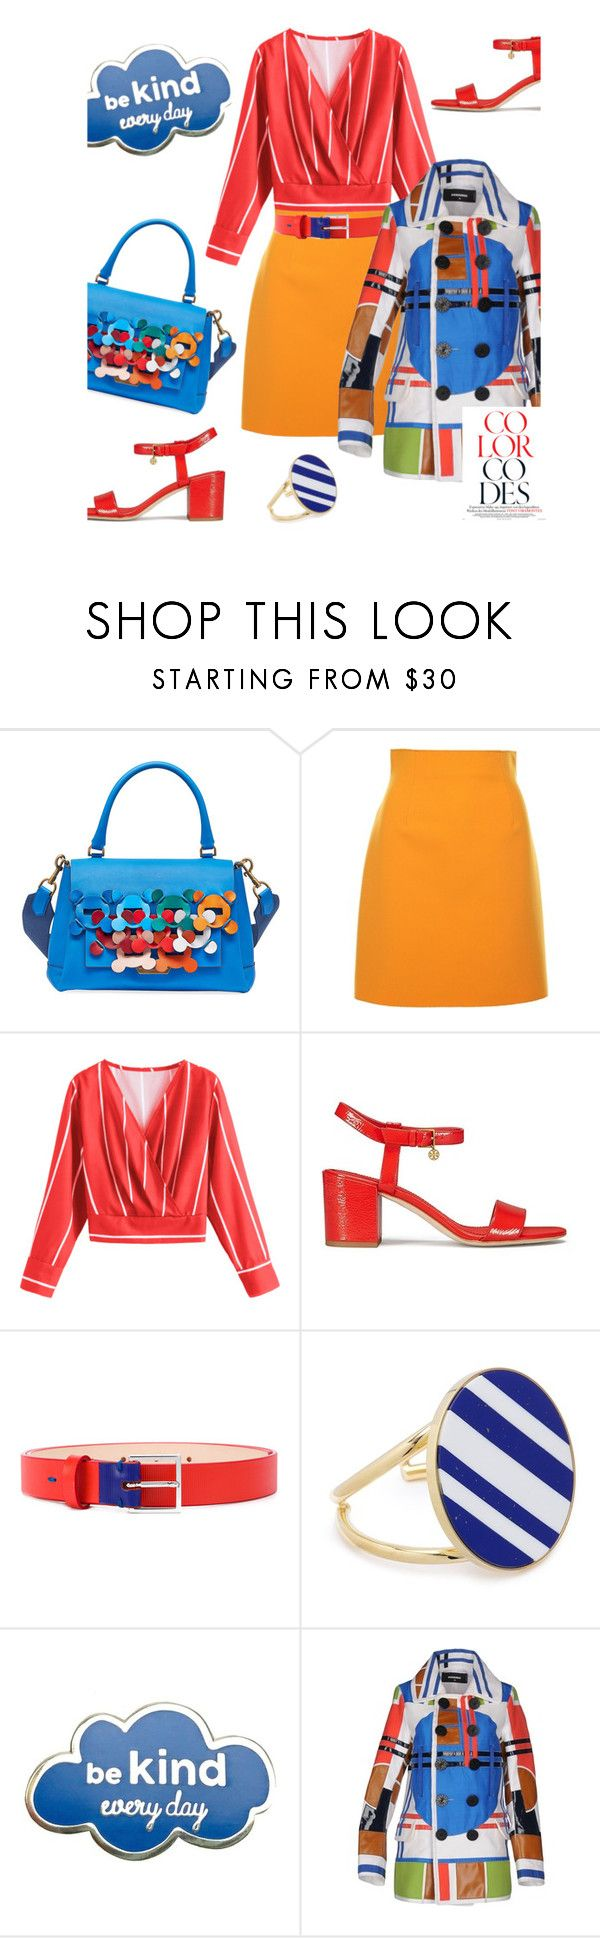 """""""Arm Candy: Statement Bags"""" by dianefantasy ❤ liked on Polyvore featuring Anya Hindmarch, MSGM, Tory Burch, PS Paul Smith, Joanna Laura Constantine, Dsquared2 and statementbags"""